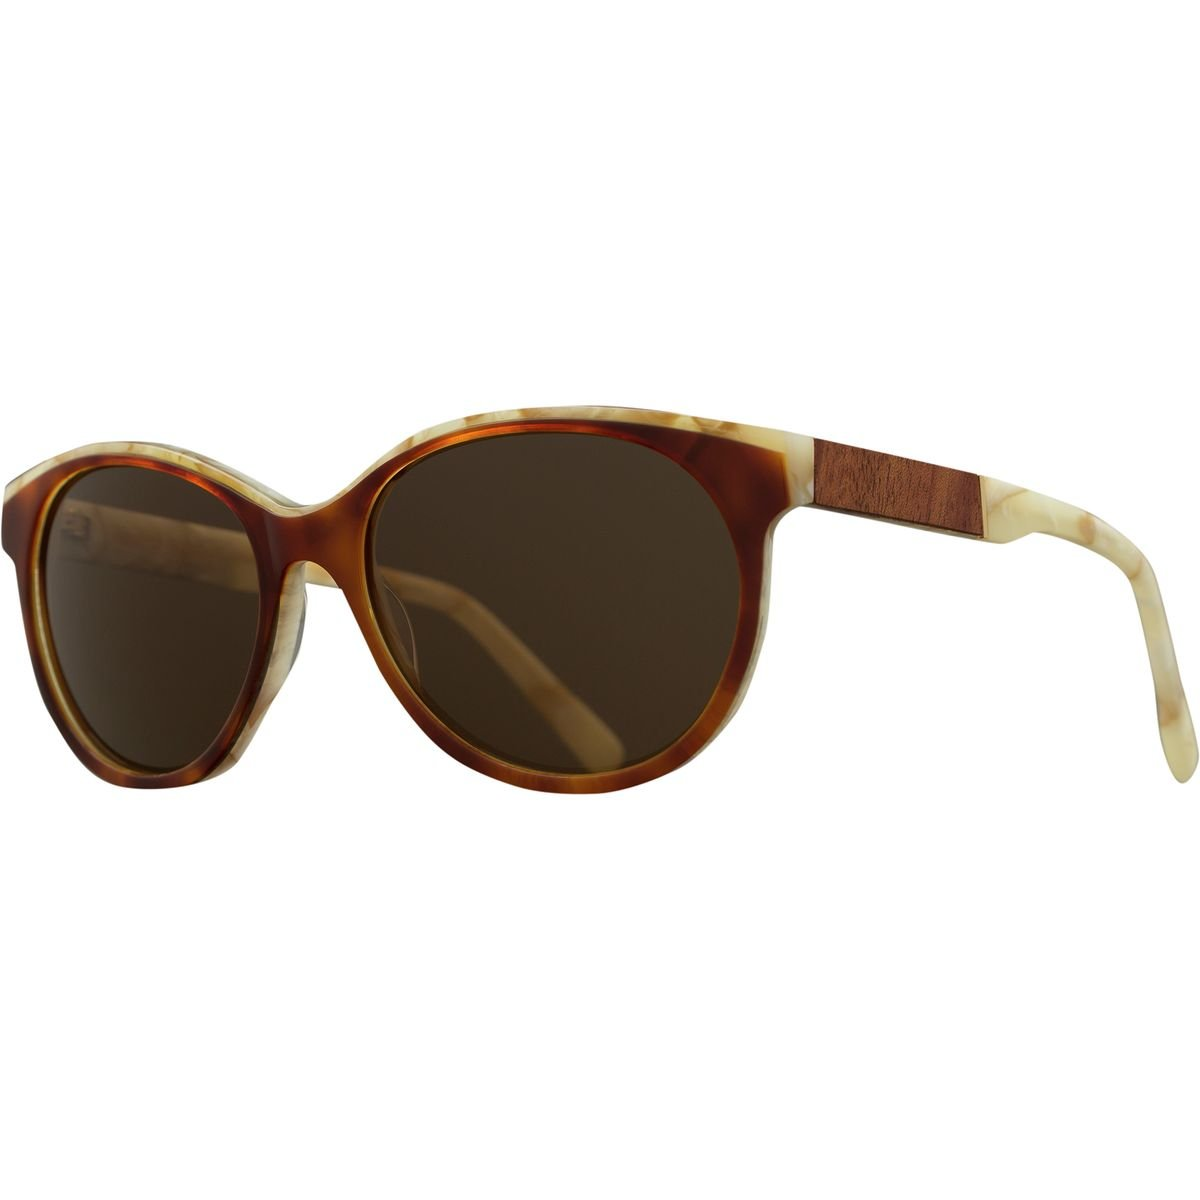 Shwood- Madison Acetate, Sustainability Meets Style, Salted Caramel/Mahogany, Brown Polarized Lenses